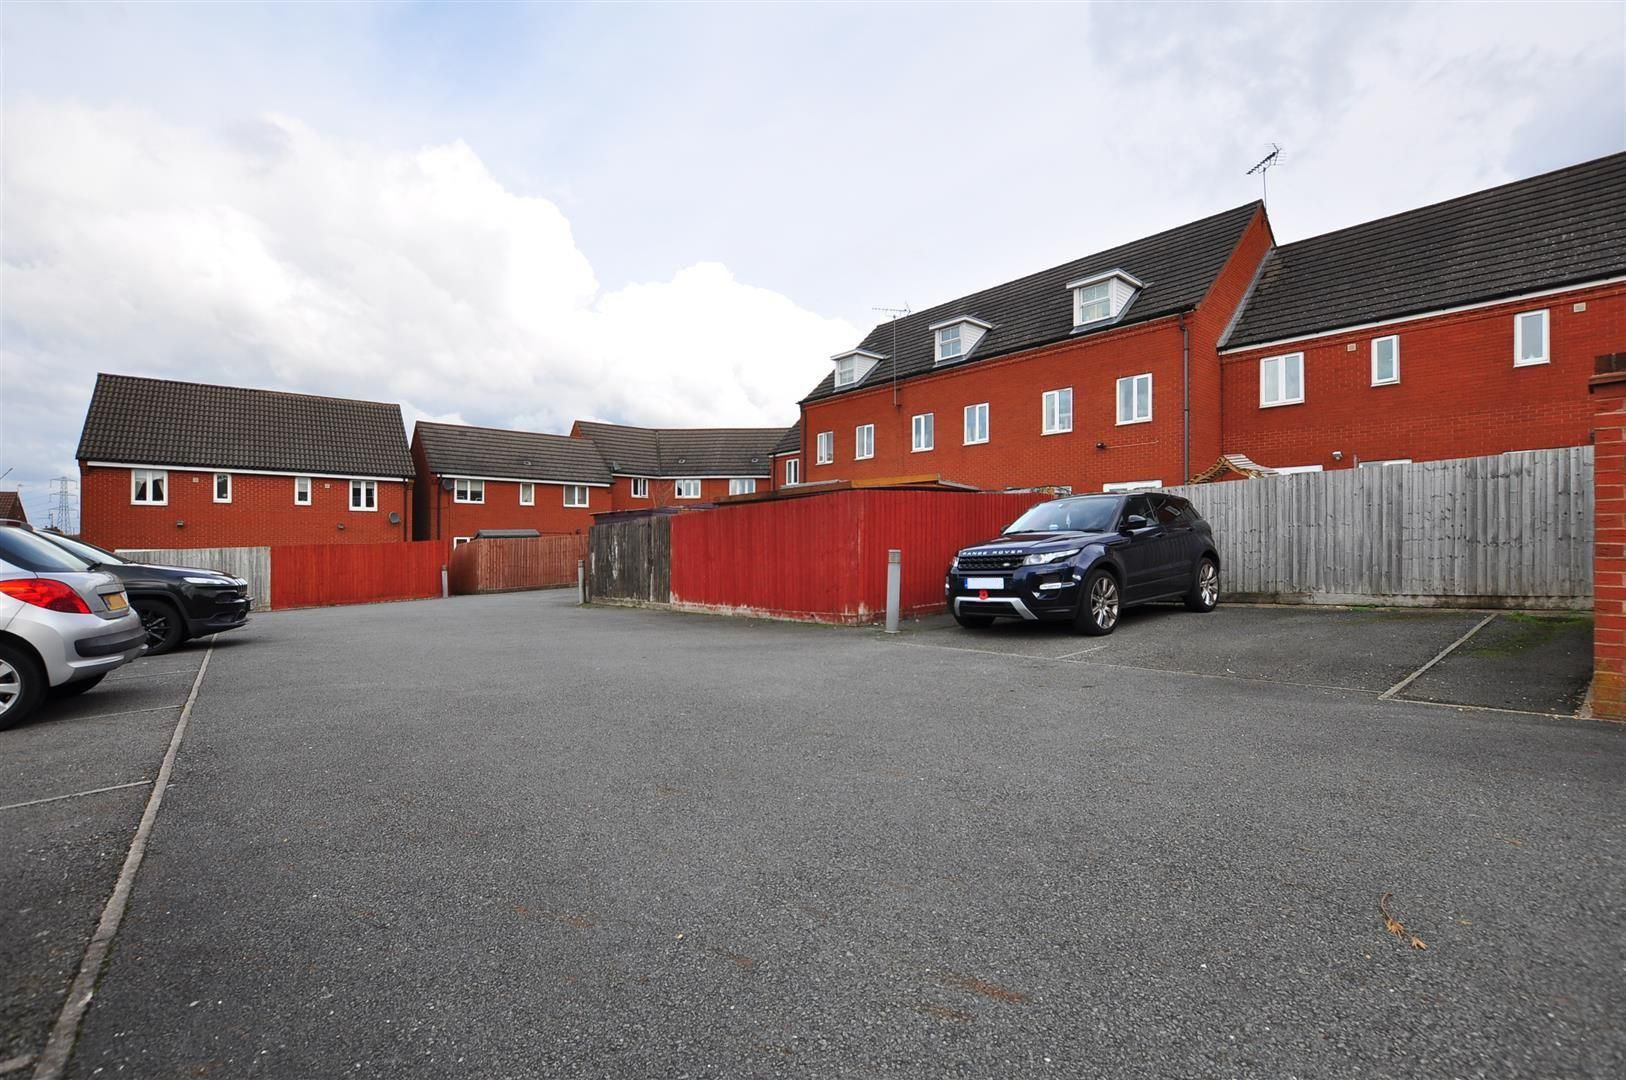 3 bed end-of-terrace for sale 16